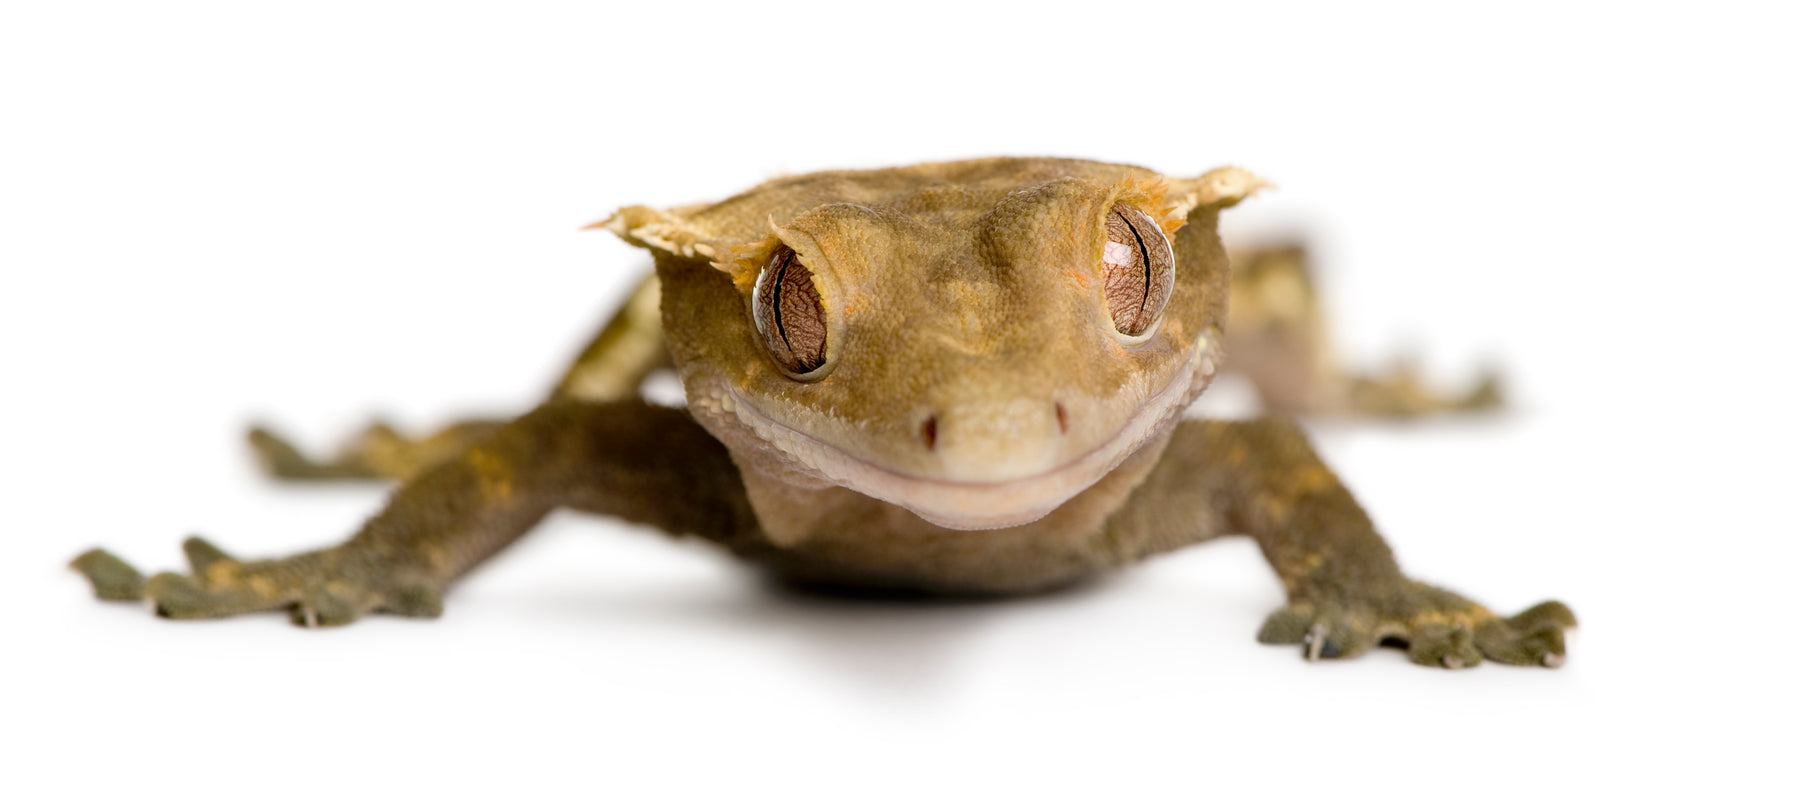 How to Care for Your Crested Gecko